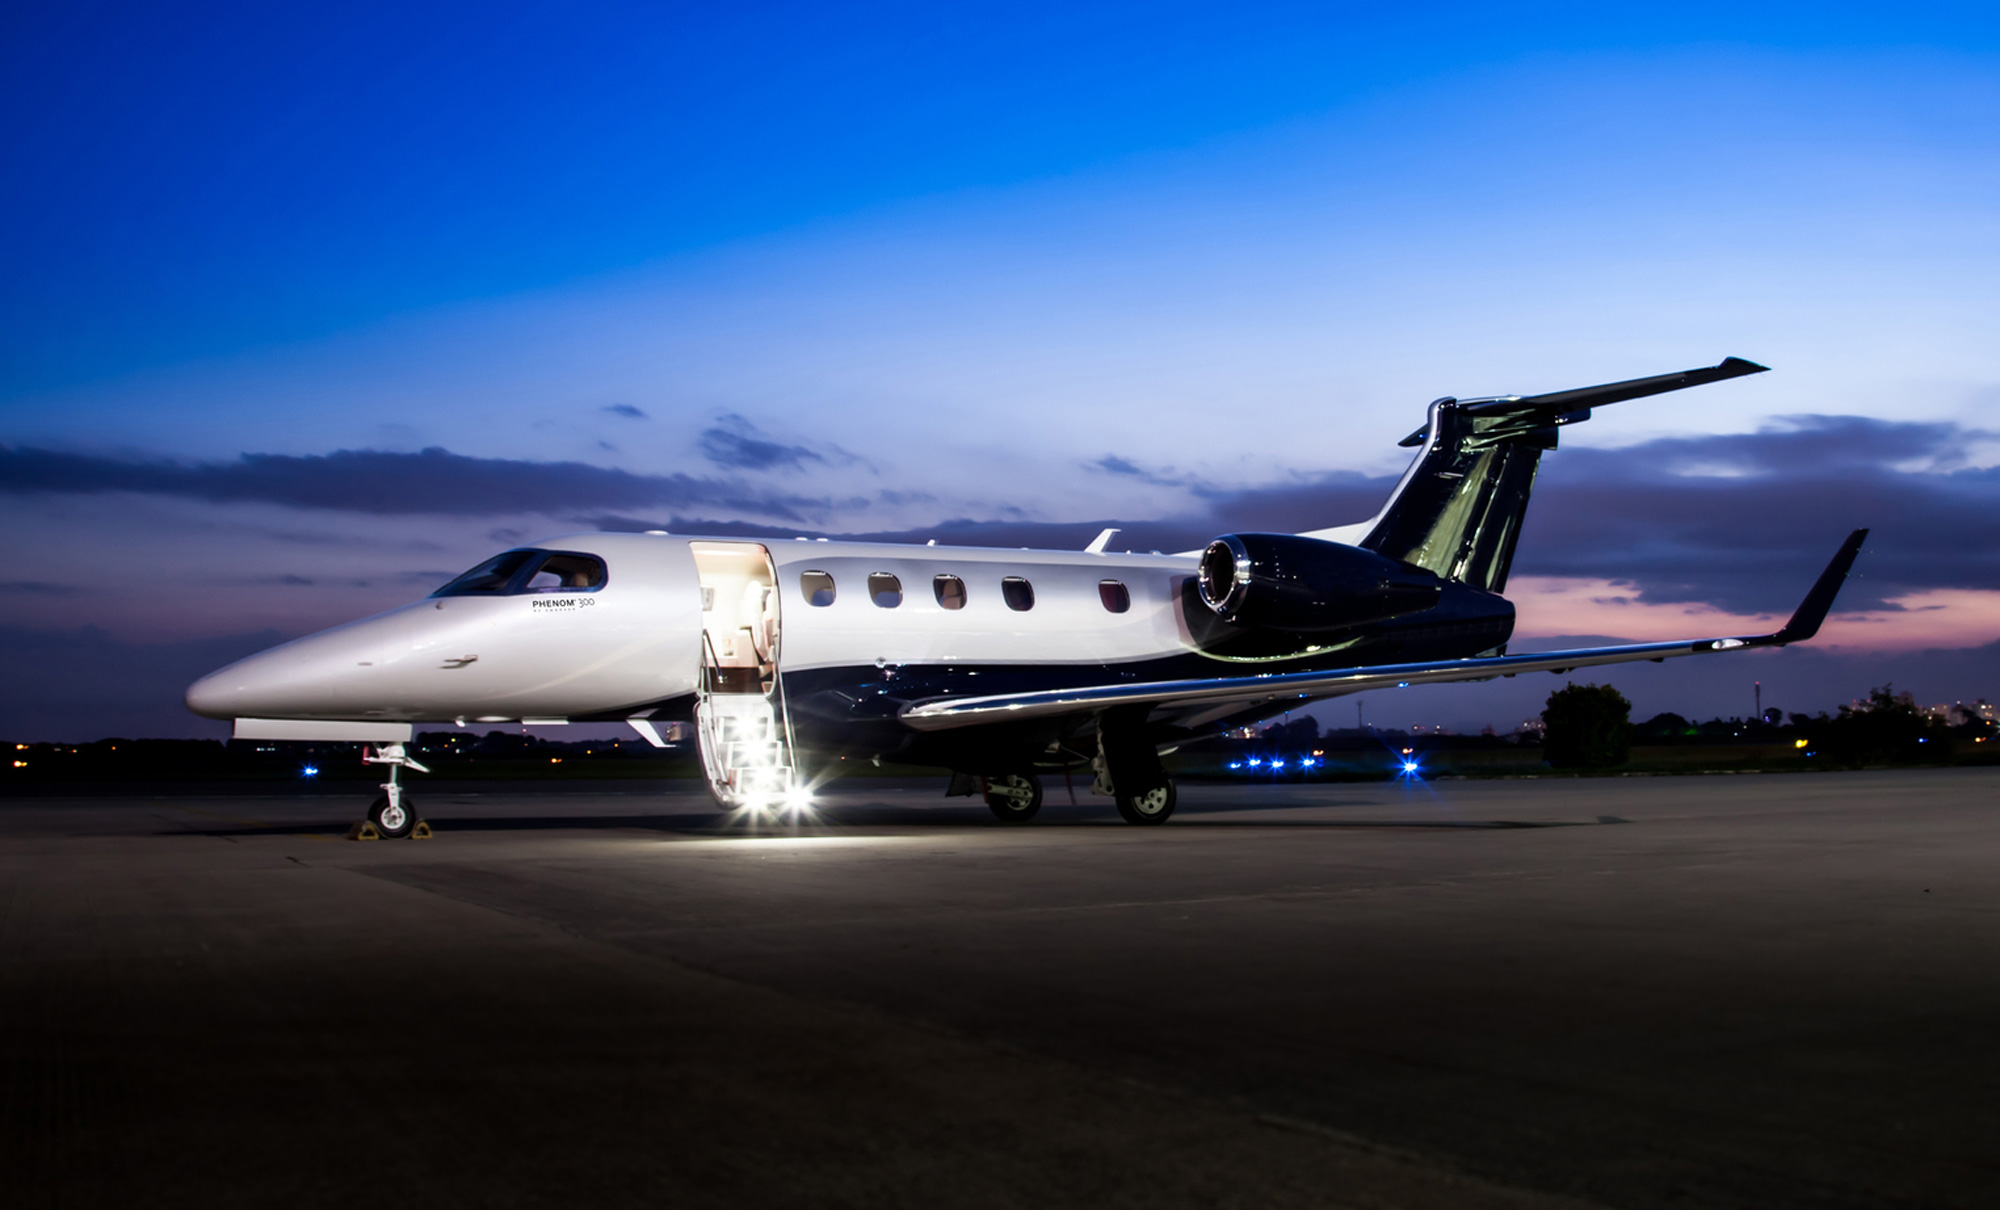 Phenom 300 light jet photo